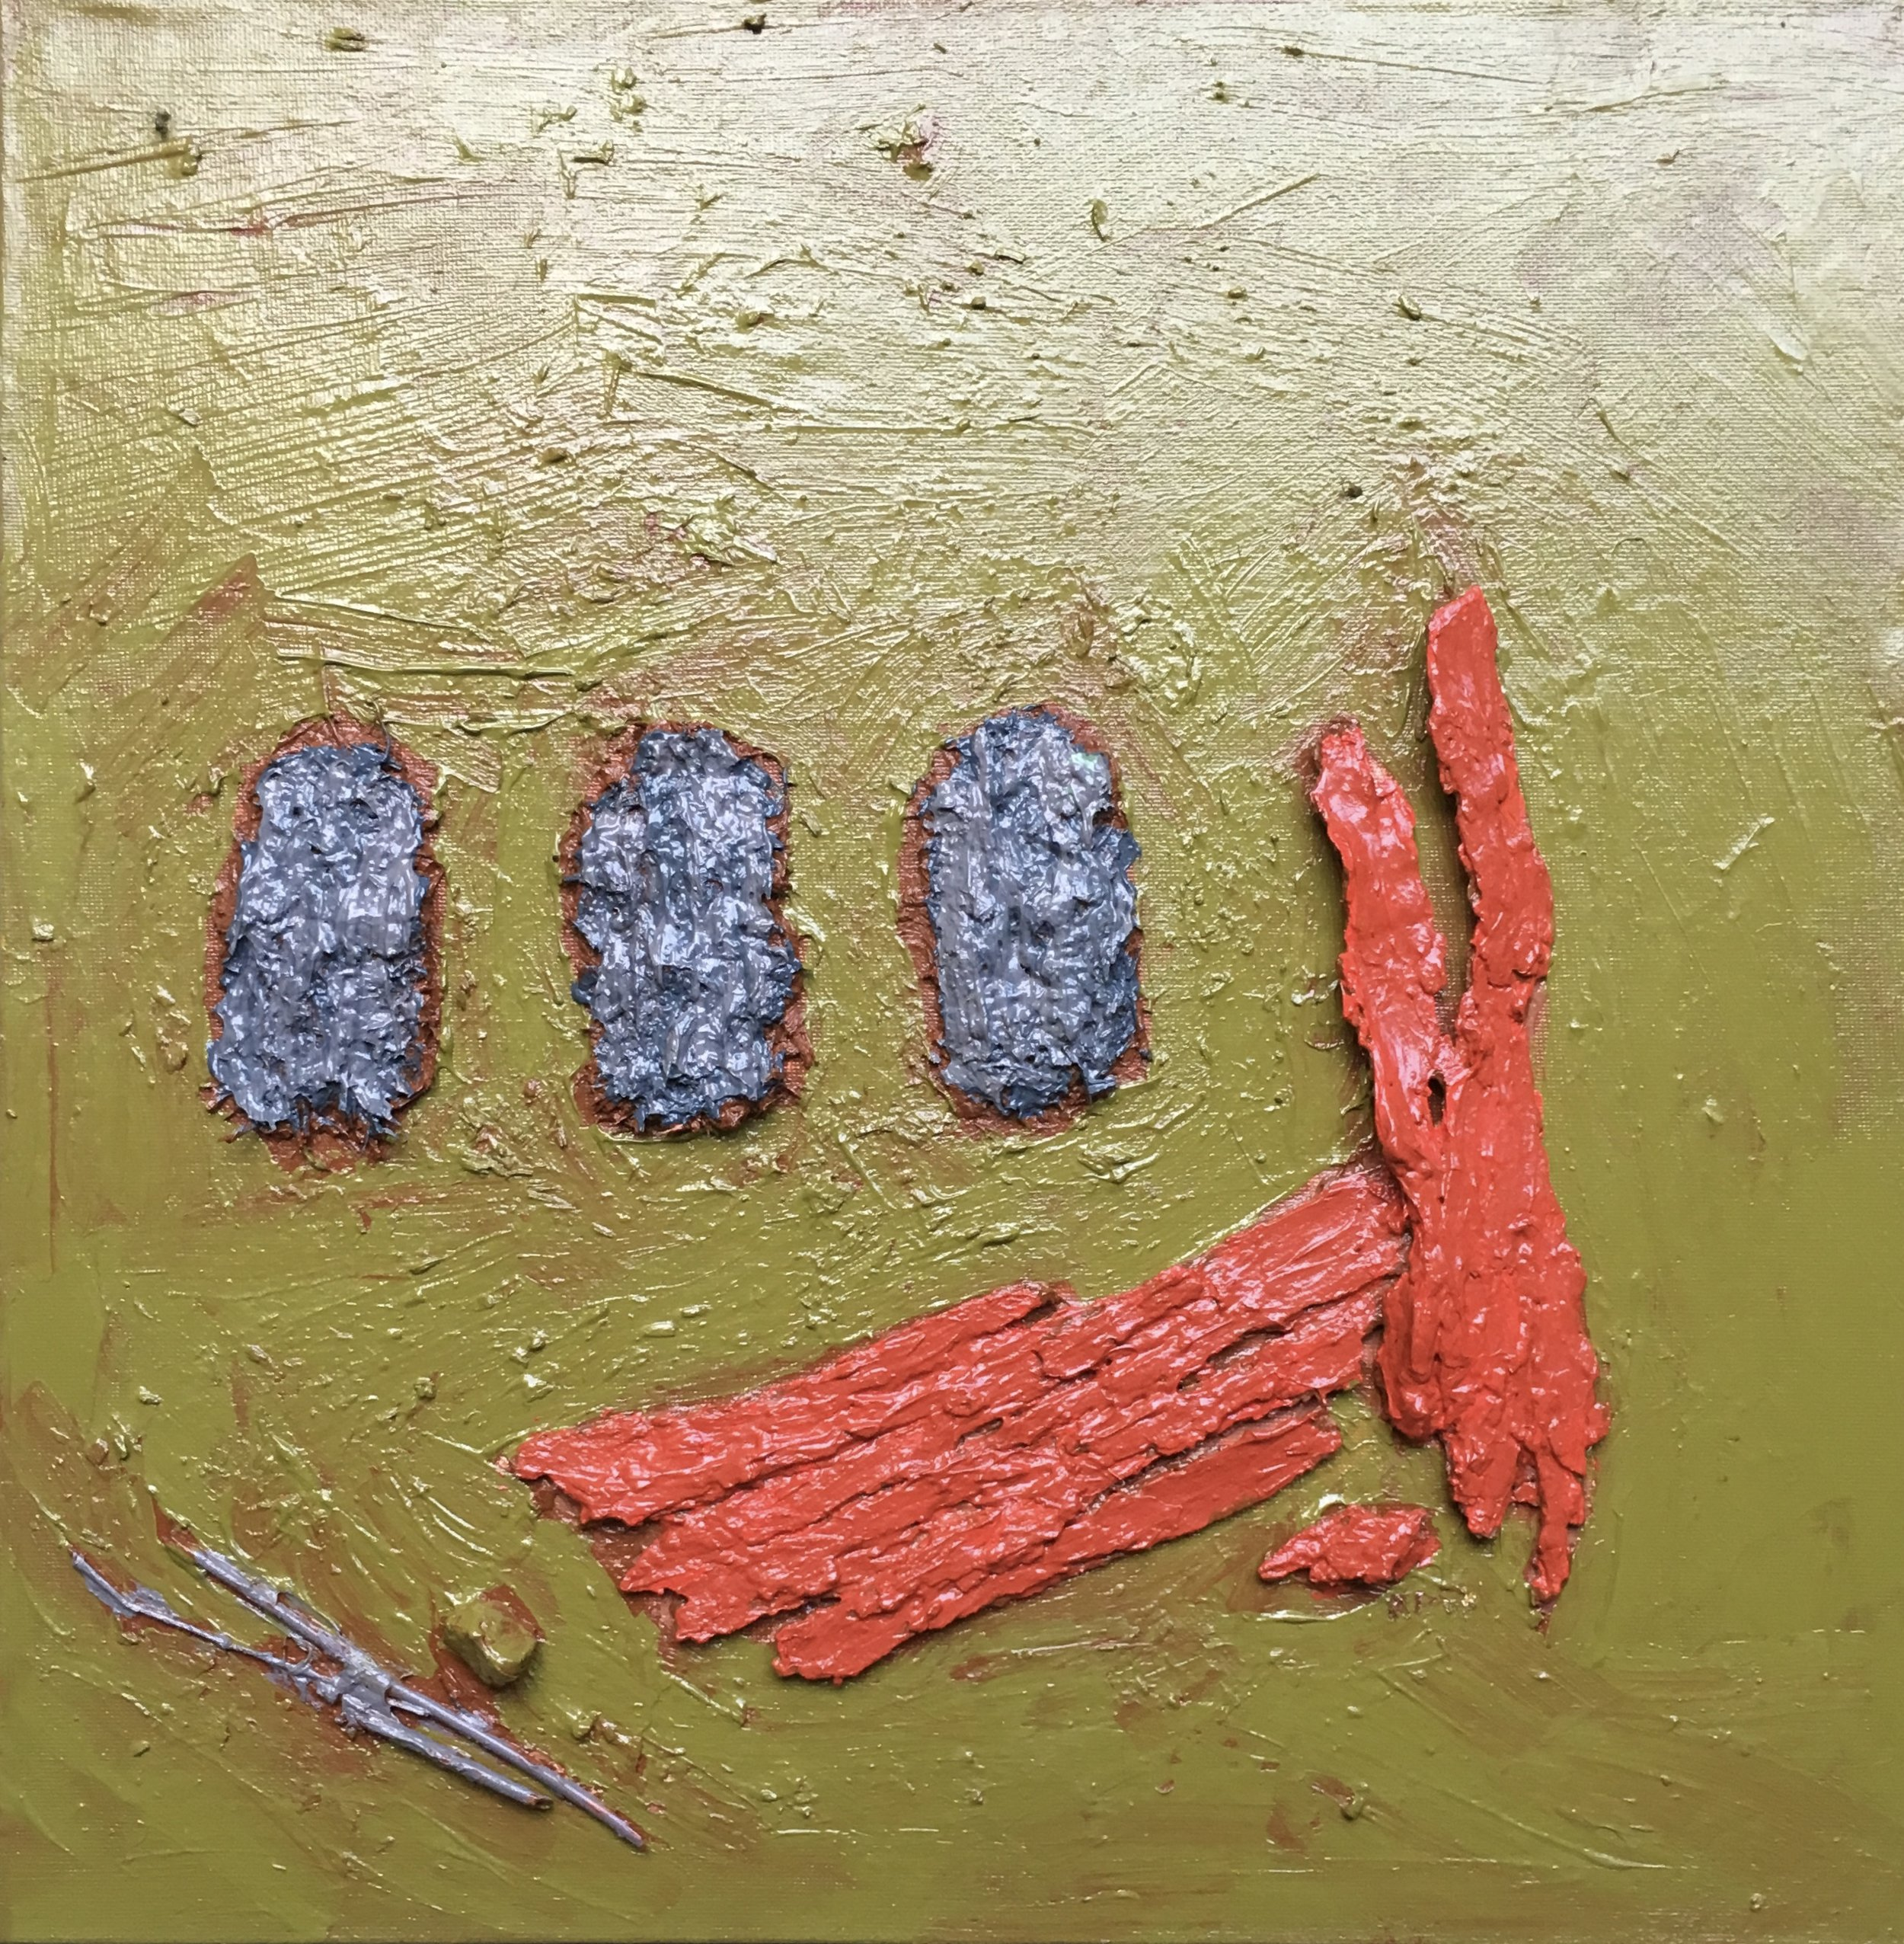 """Title """"July 9th, 2019. Golf Course,Road, South side of Lucknow Line at or near 37227, Golf Course Road. Huron County.""""  Acrylic polymer & Acrylic paint on Bark, Stones , earth, sawdust, and twigs on hand-made canvas Board.  Size Unframed.  15"""" W X 15 1/4"""" H"""